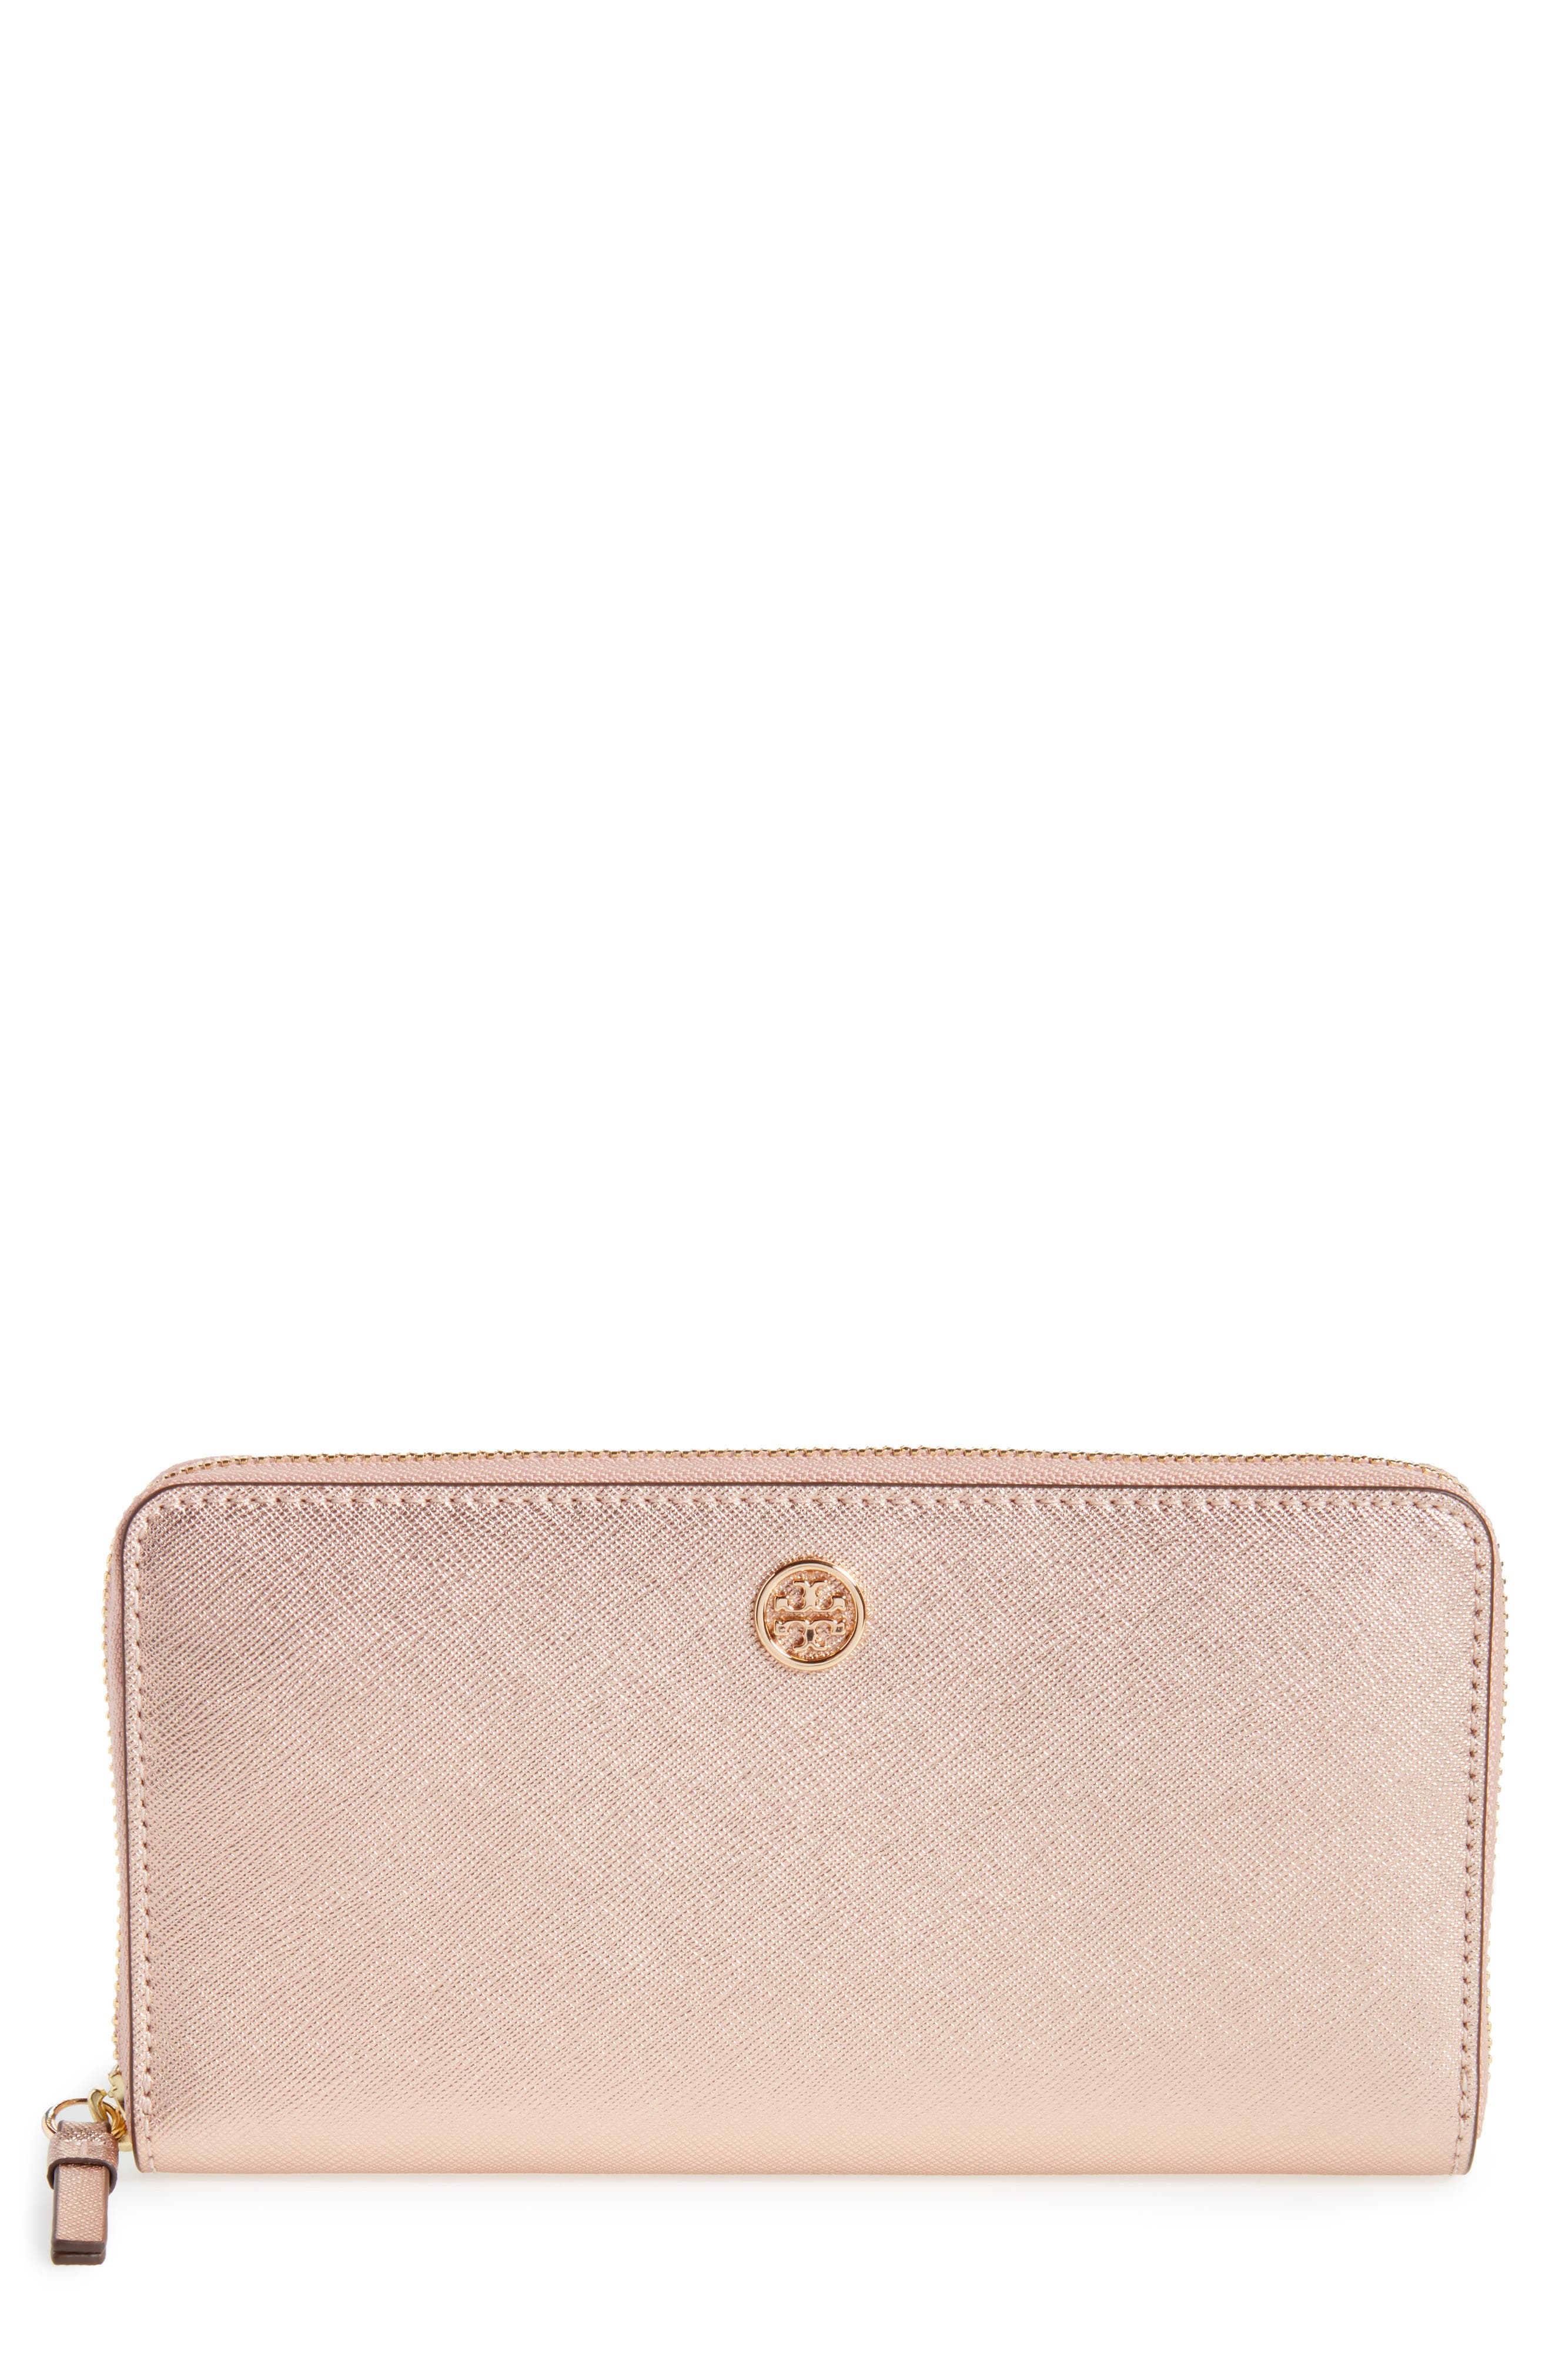 Robinson Metallic Leather Continental Wallet,                             Main thumbnail 1, color,                             Light Rose Gold